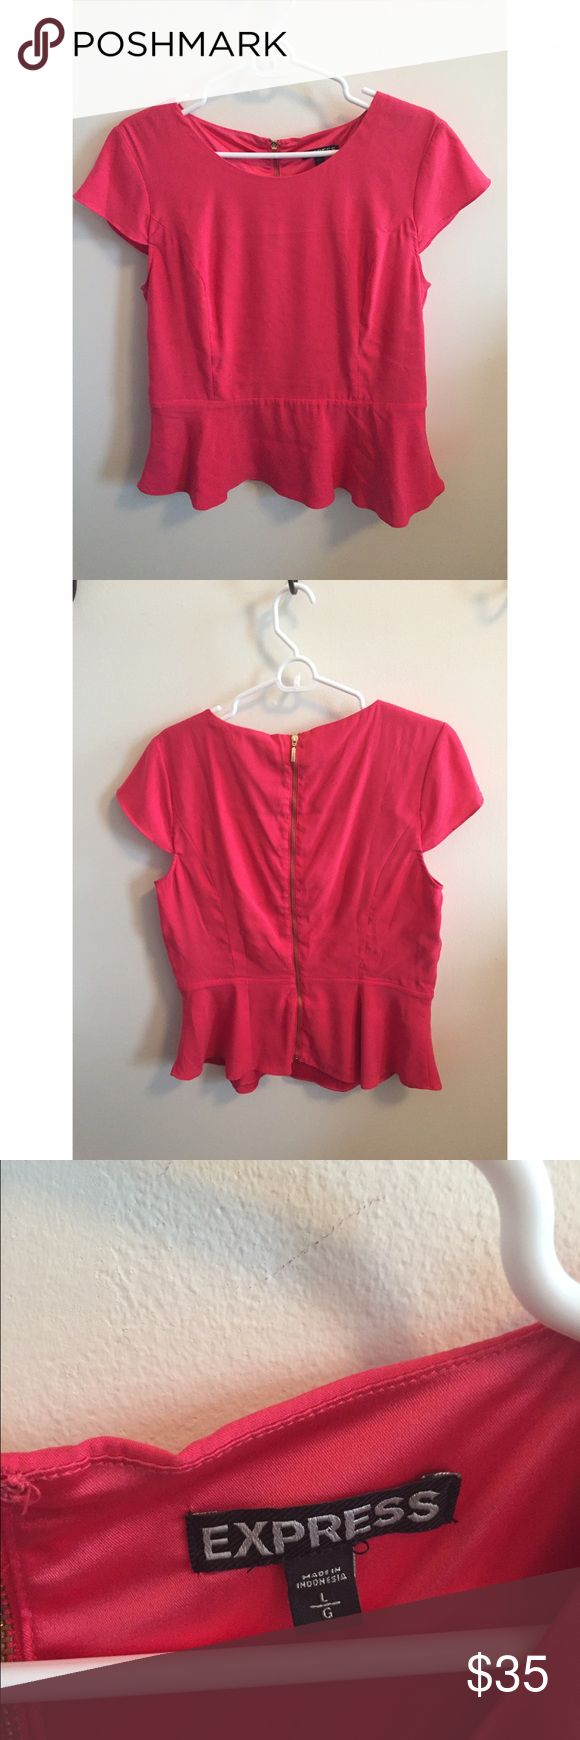 Express Pink Peplum Blouse - Zip Back - SIZE L Hot pink, sleek Express peplum top with gold zipper back detail. Perfect business casual, great for day to night! Great condition, like new! Express Tops Blouses